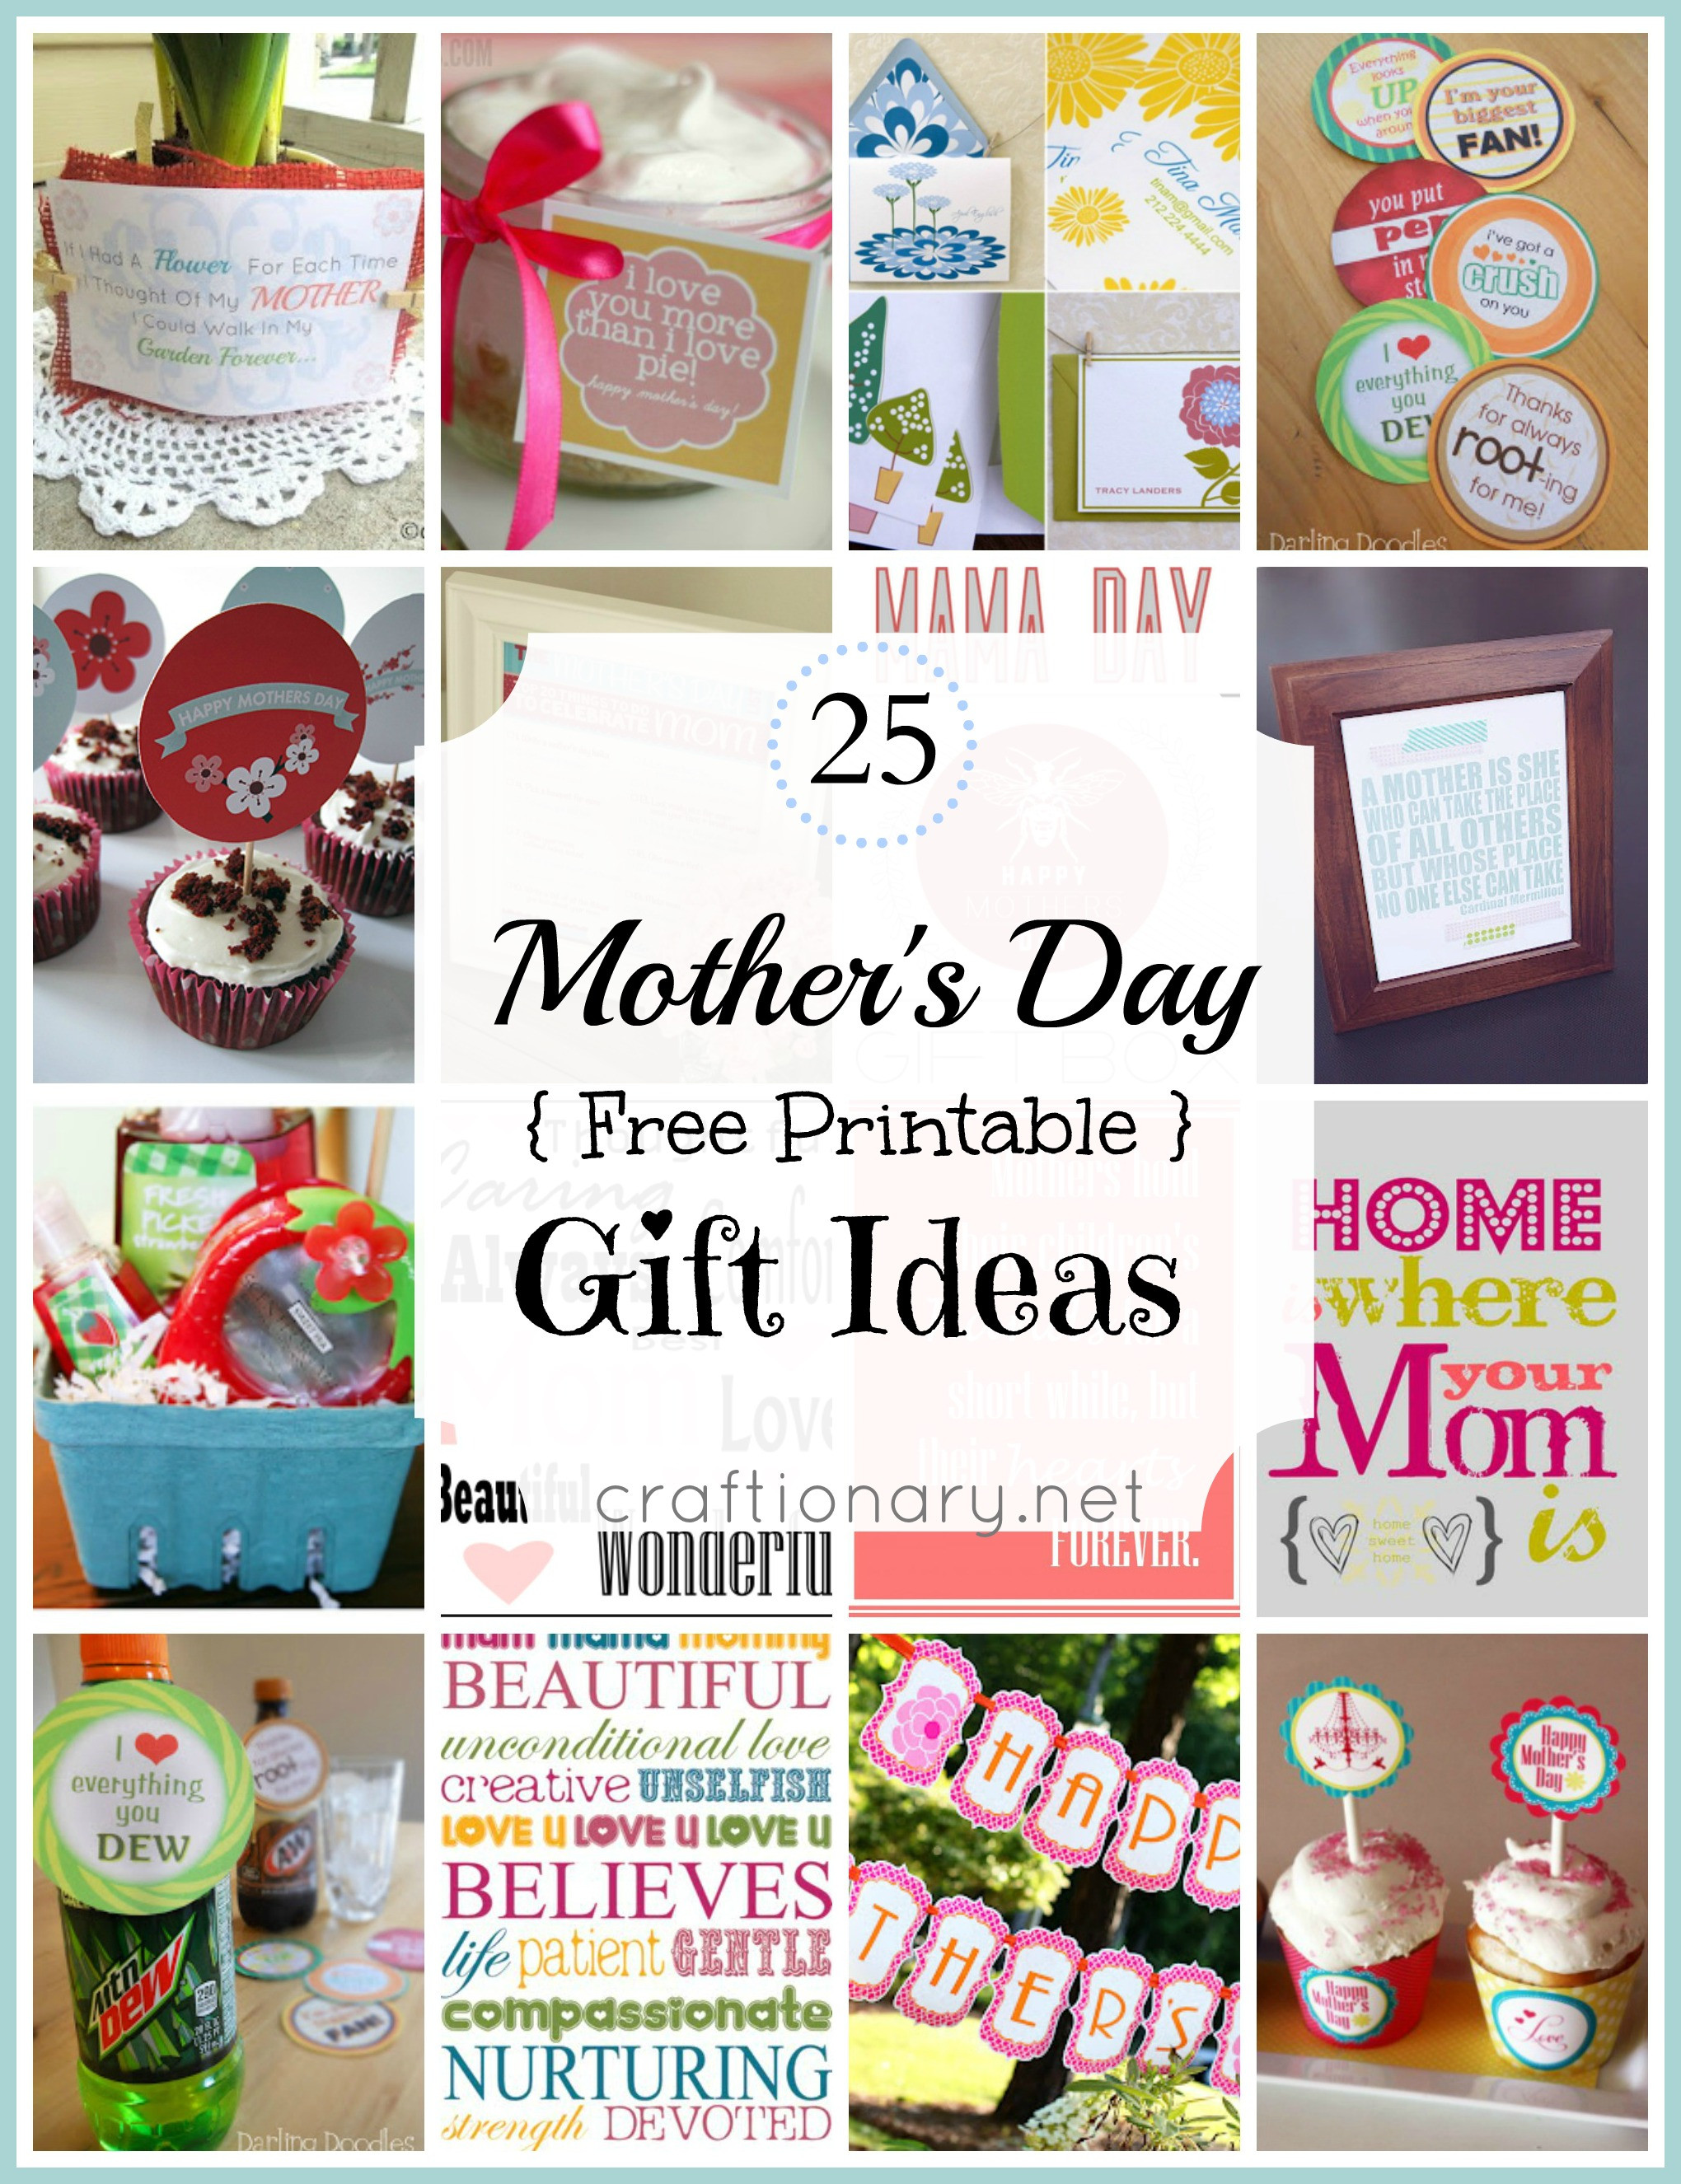 Best Mothers Day Gift Ideas  Craftionary